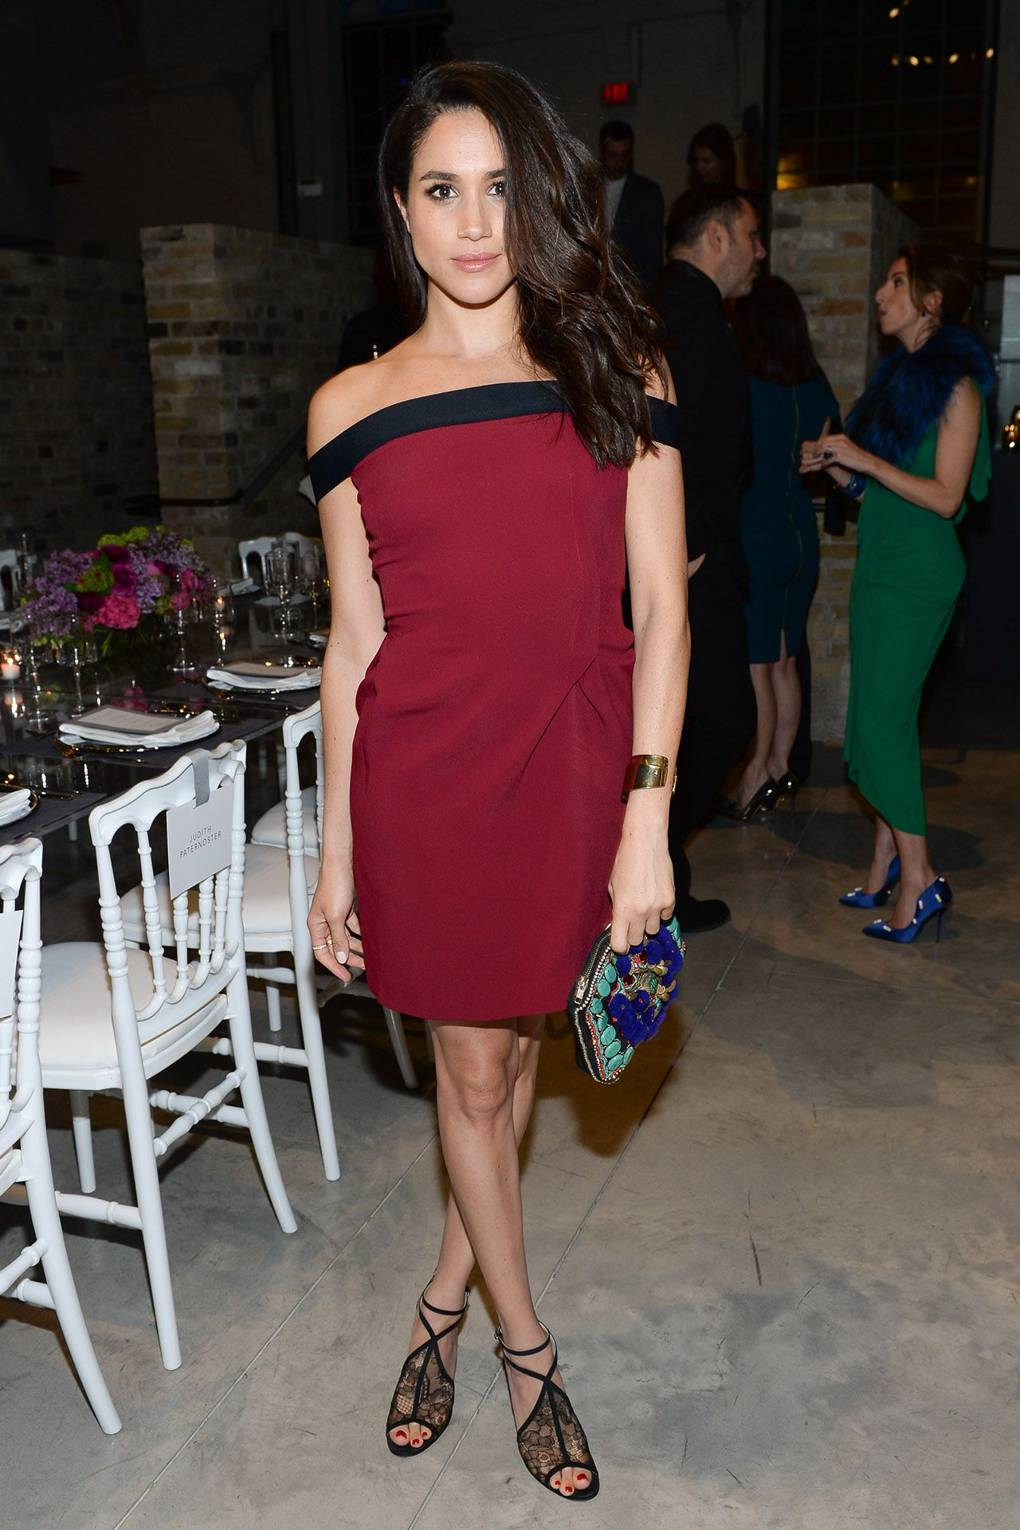 Meghan Markle Interview About Her Fashion Style Playing Rachel In